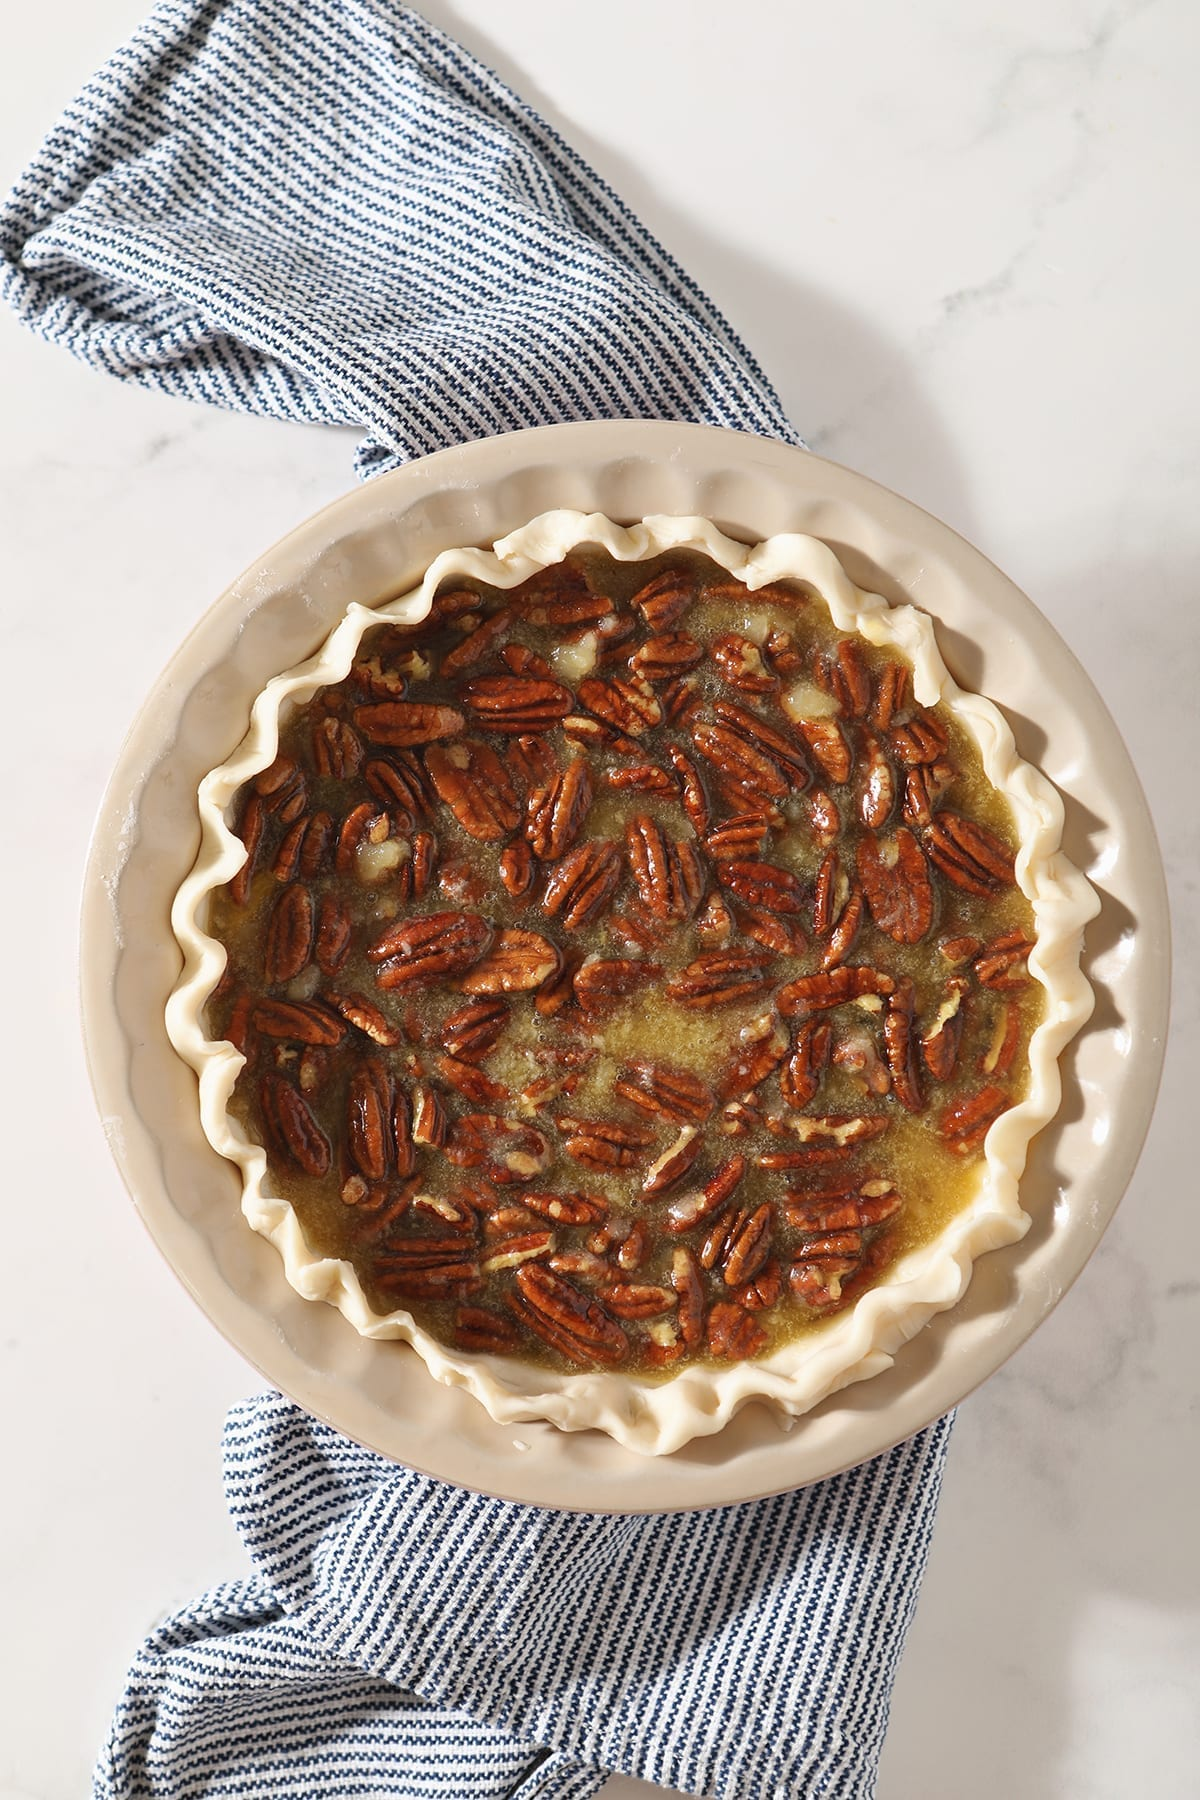 A Bourbon Pecan Pie sits on a blue and white striped towel before baking